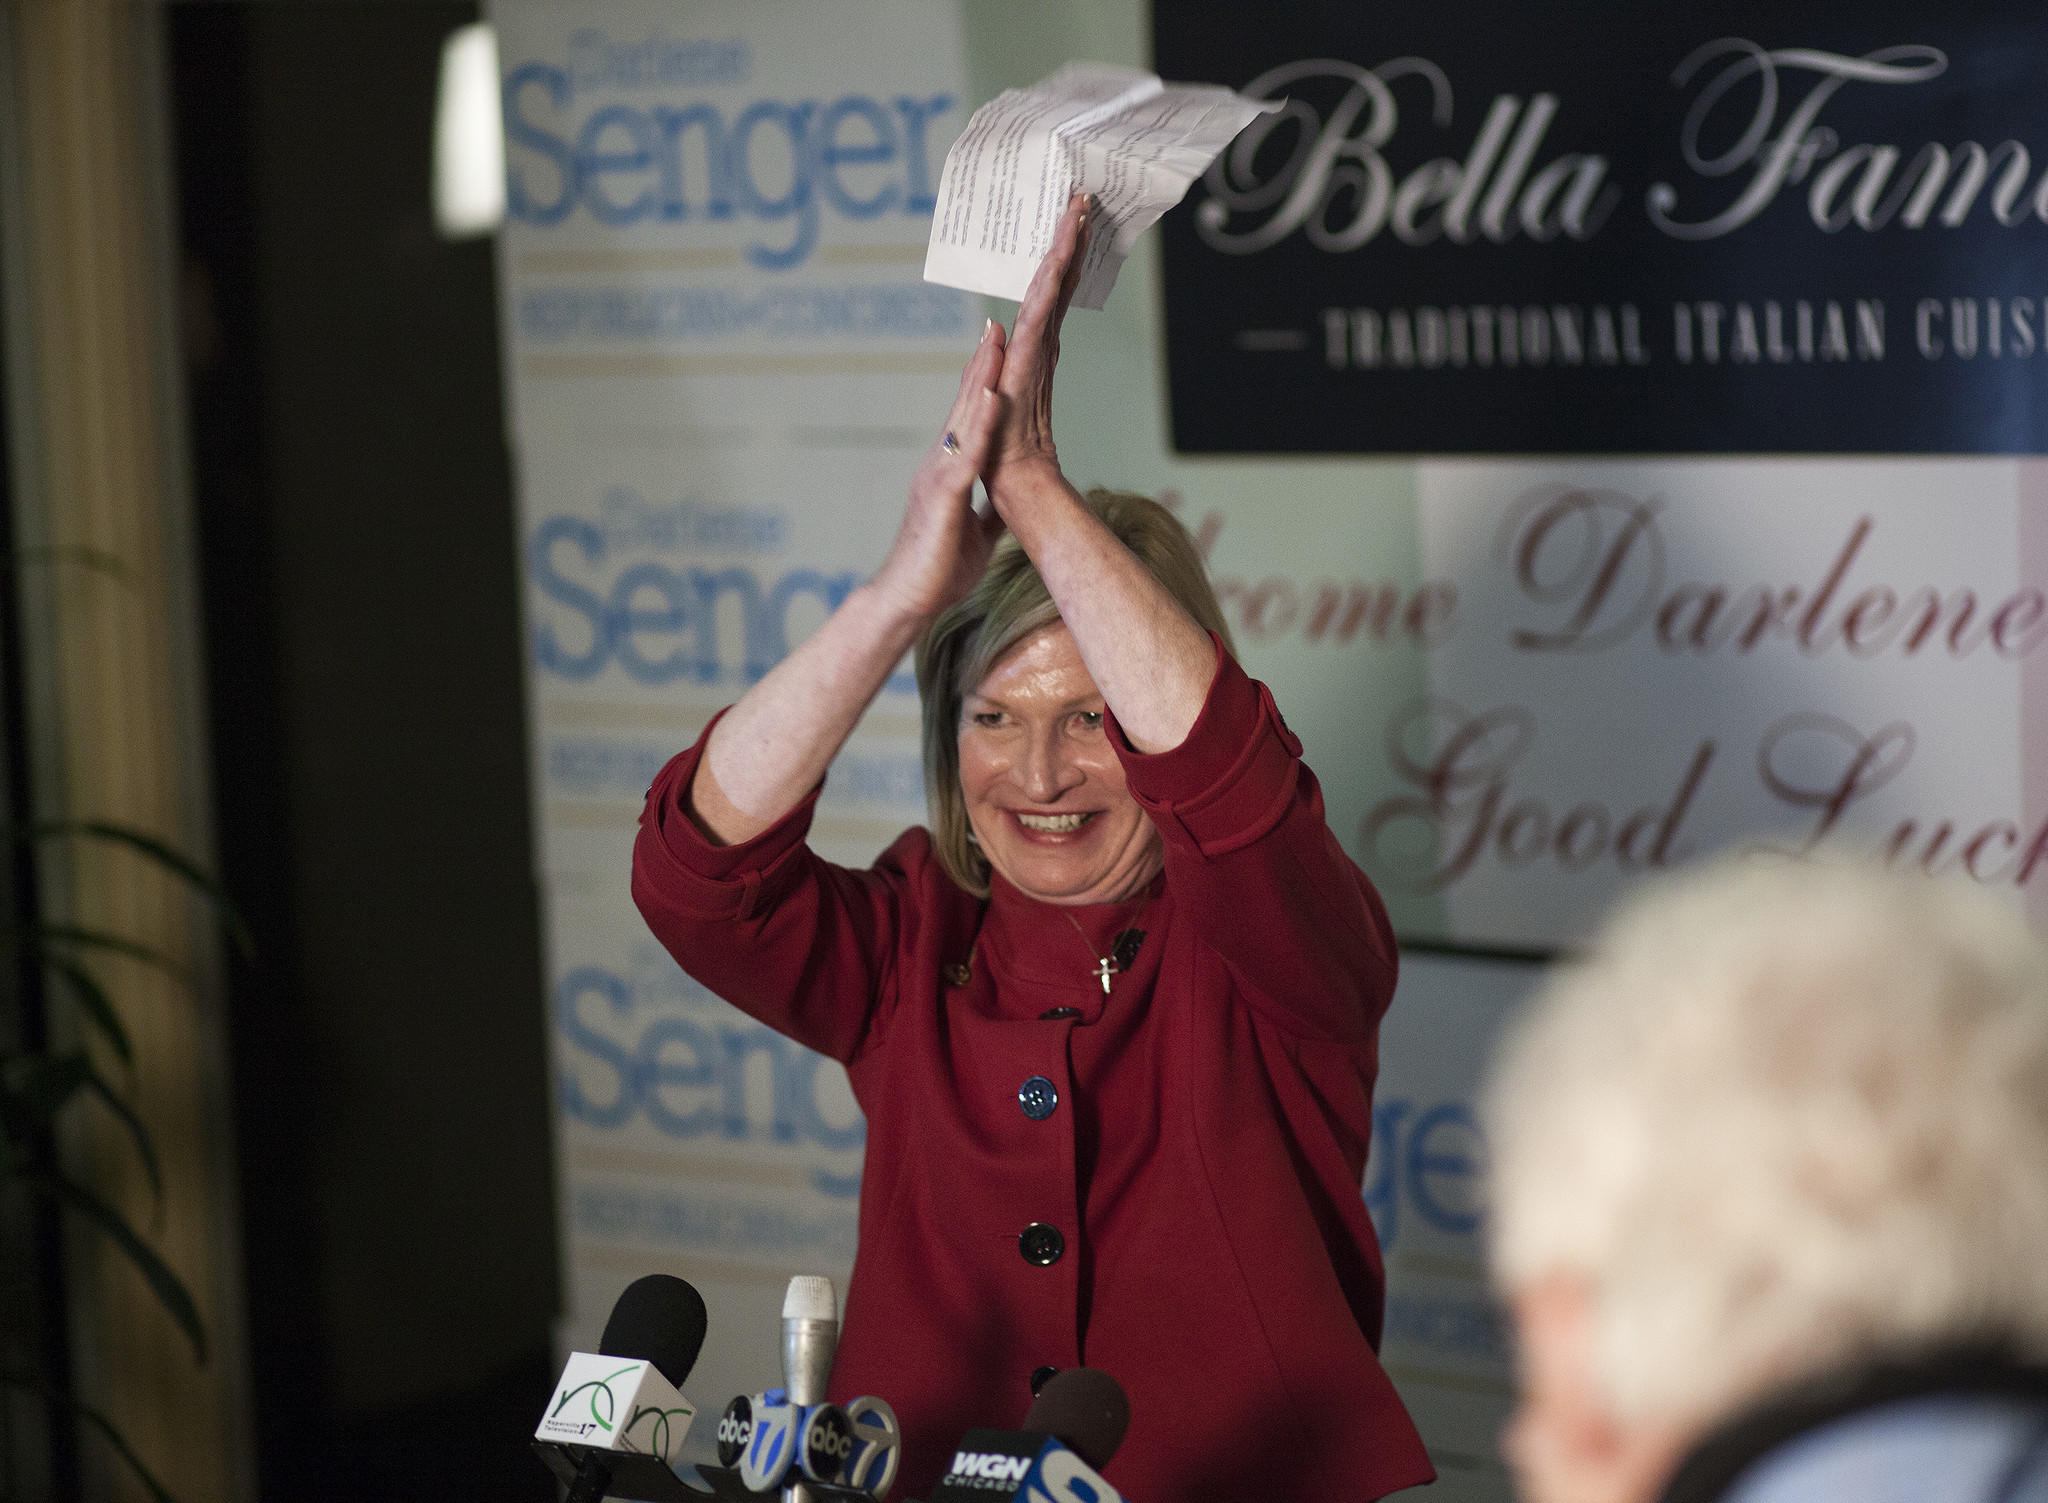 State Representative and 11th Congressional District Republican candidate Darlene Senger declares victory in the primary election at the Bella Familia restaurant in Naperville on Tuesday night. (Corey R. Minkanic, for the Chicago Tribune)